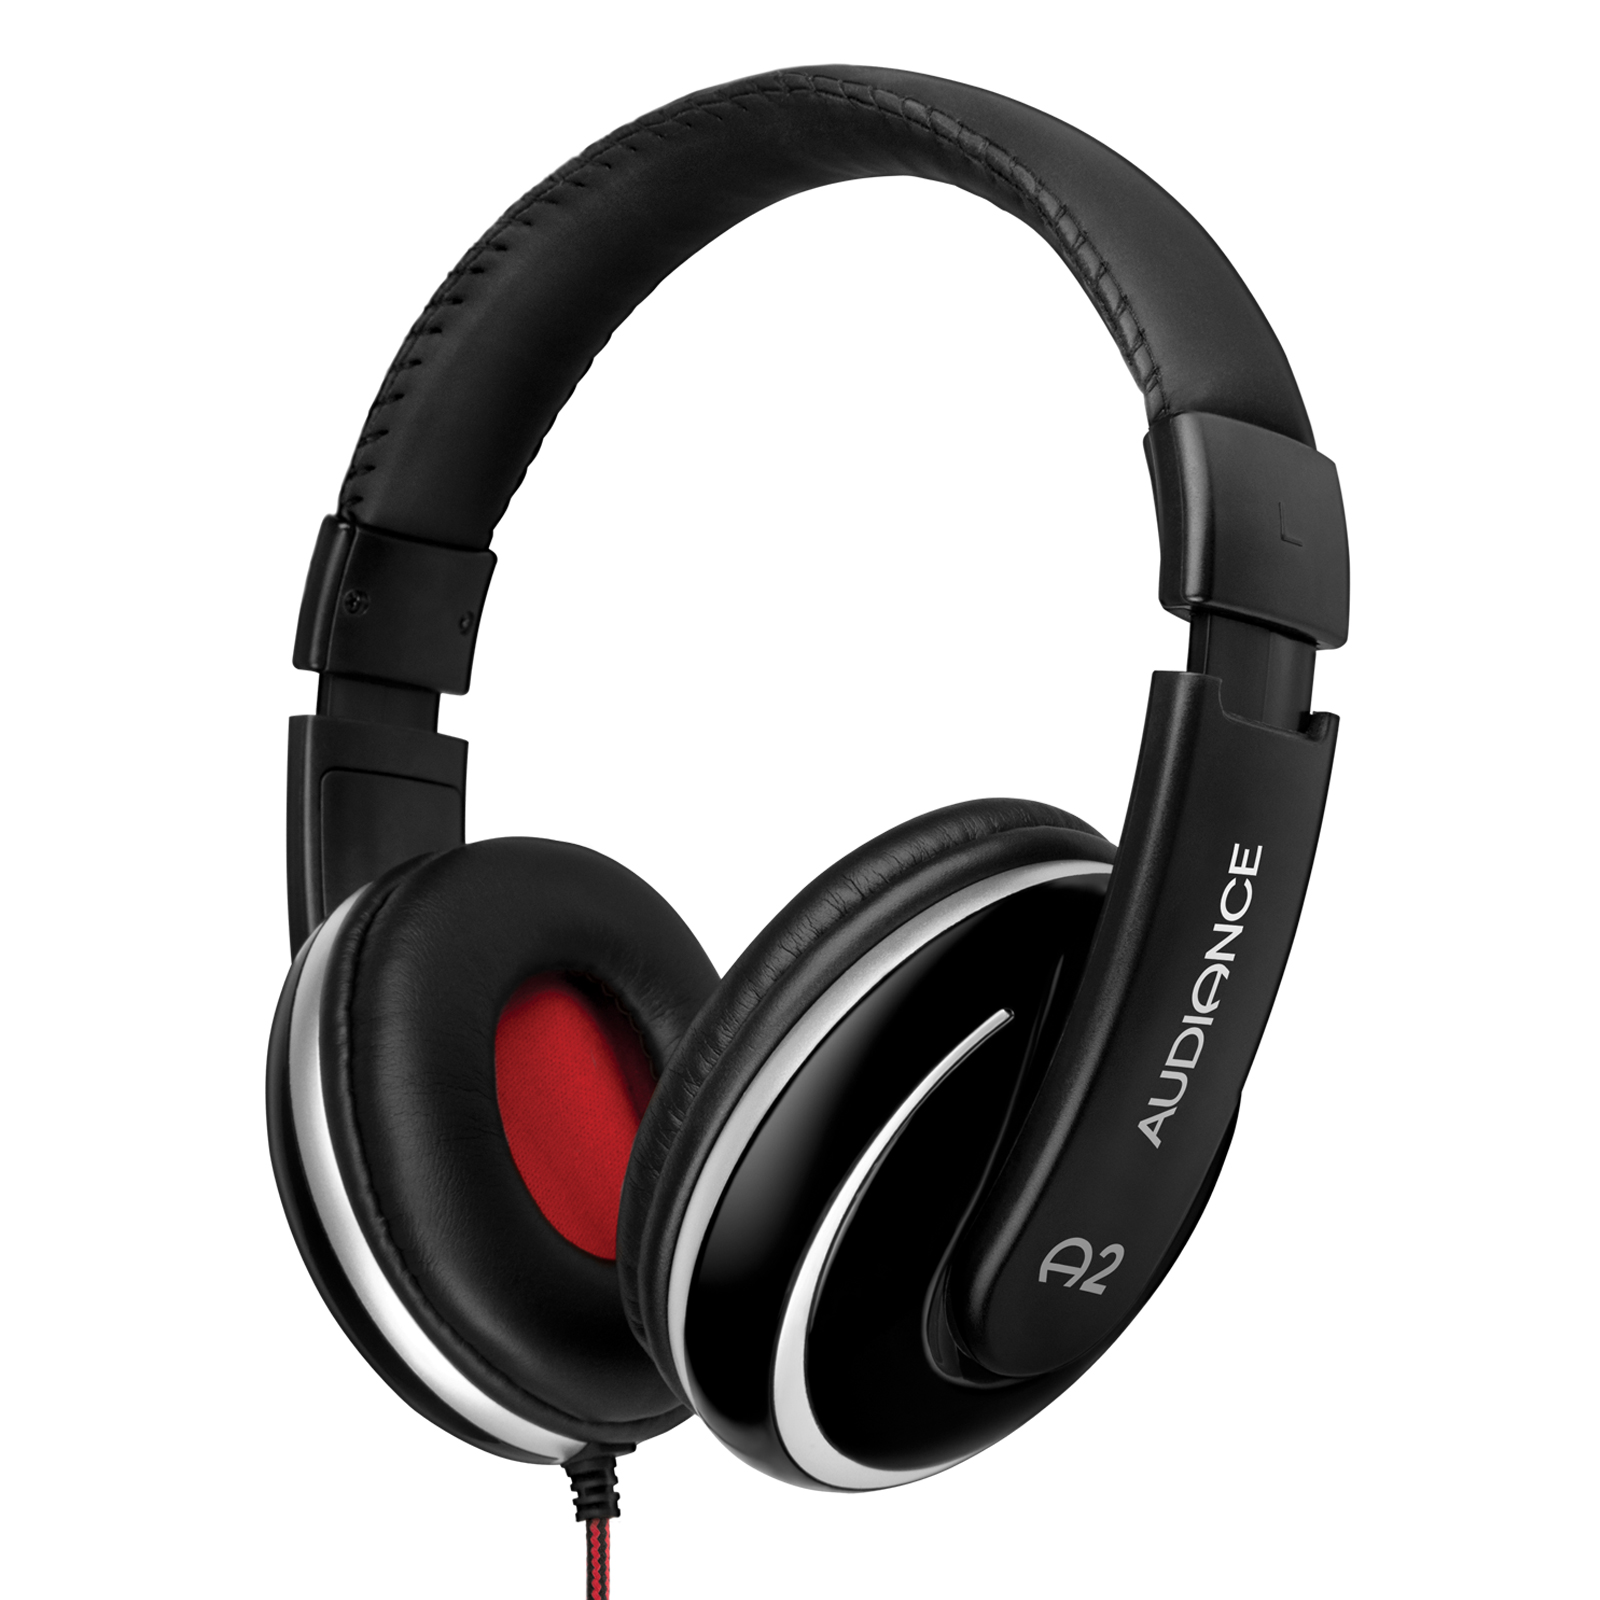 Audiance A2 Headphones - Black/Silver